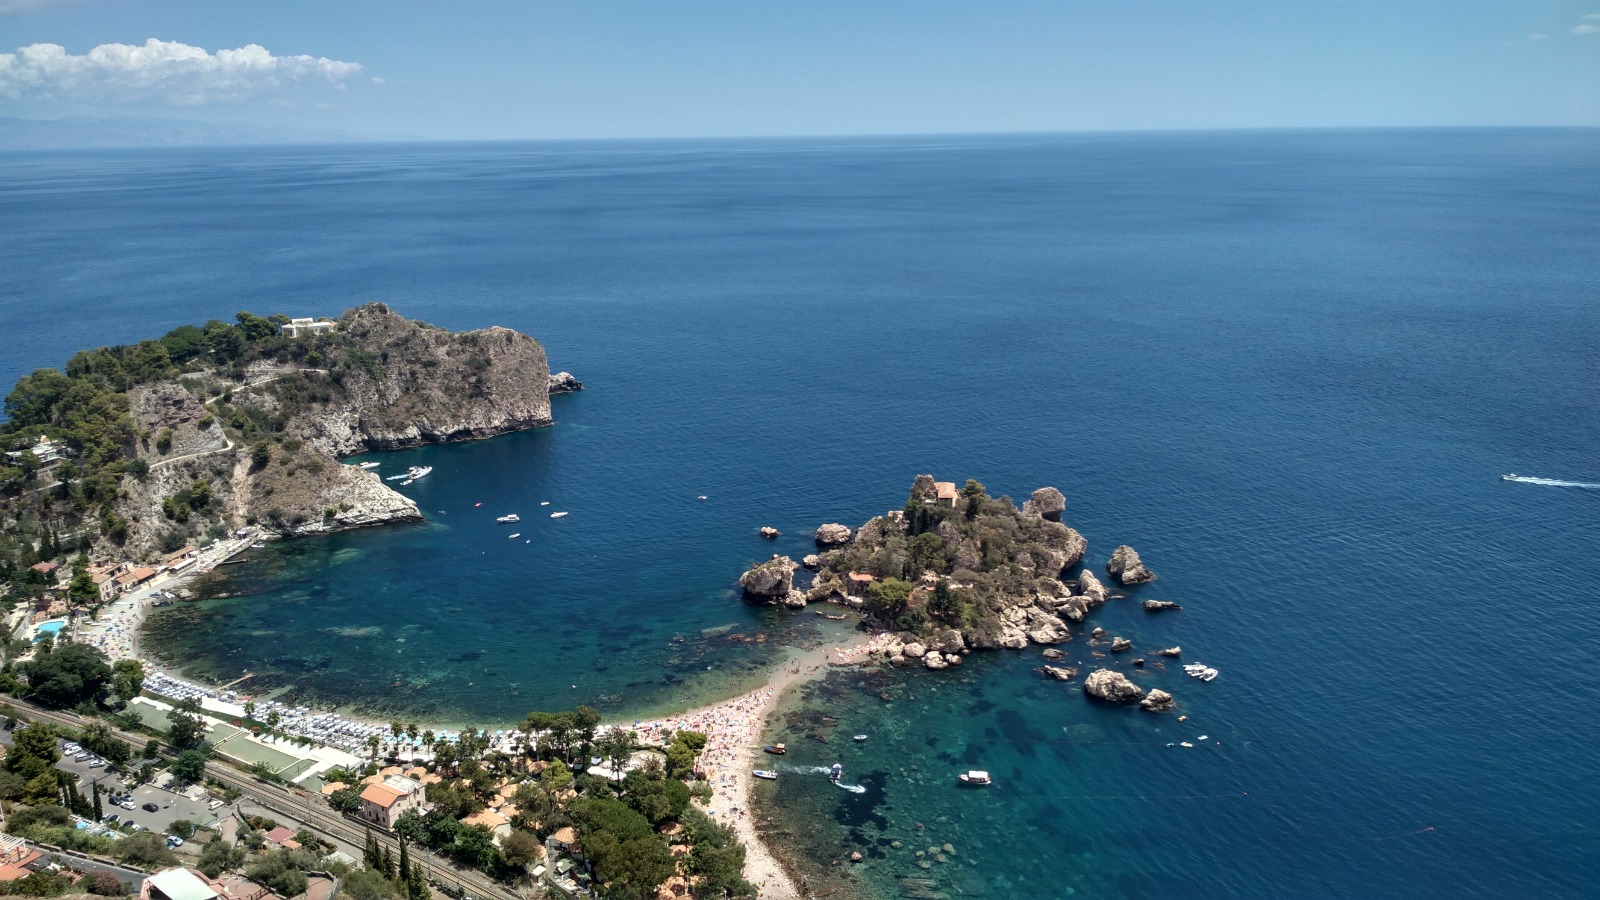 Wonderful landscape of Taormina seaside